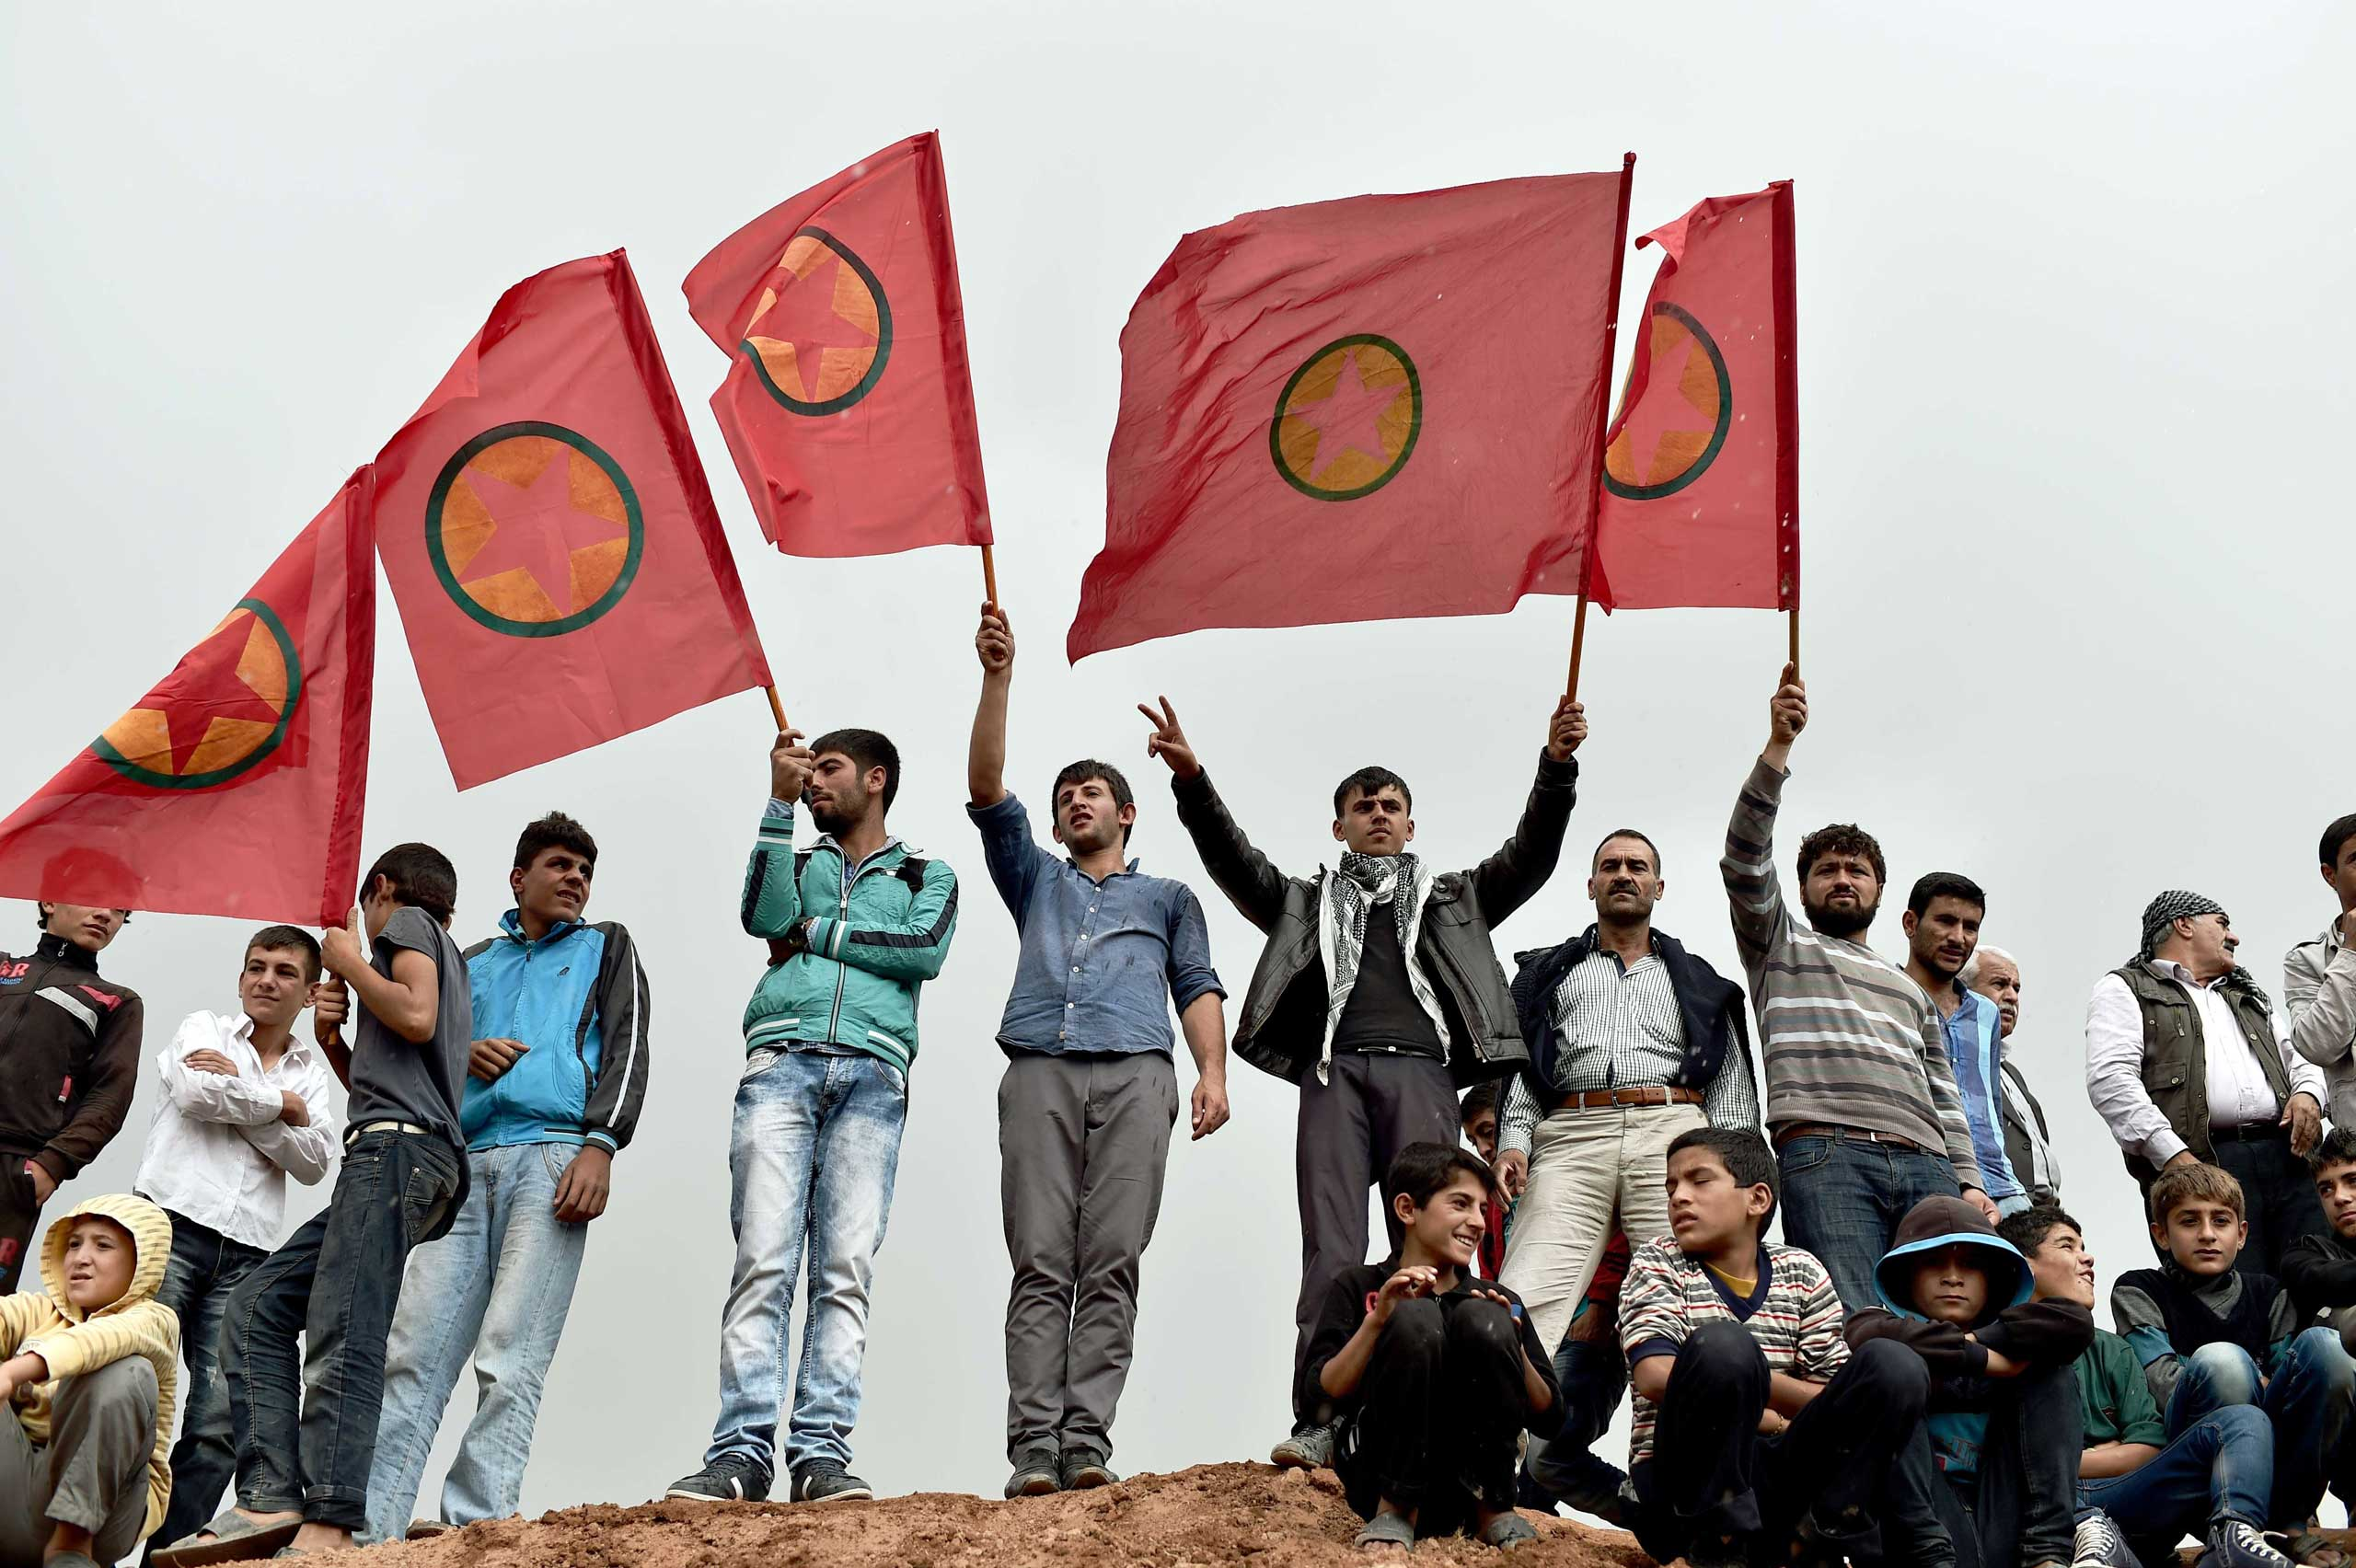 Kurdish people wave Kurdistan Workers' Party (PKK) flags while attending a funeral ceremony for YPG (People's Protection Units) fighters in the town of Suruc, Sanliurfa province, on Oct. 14, 2014.